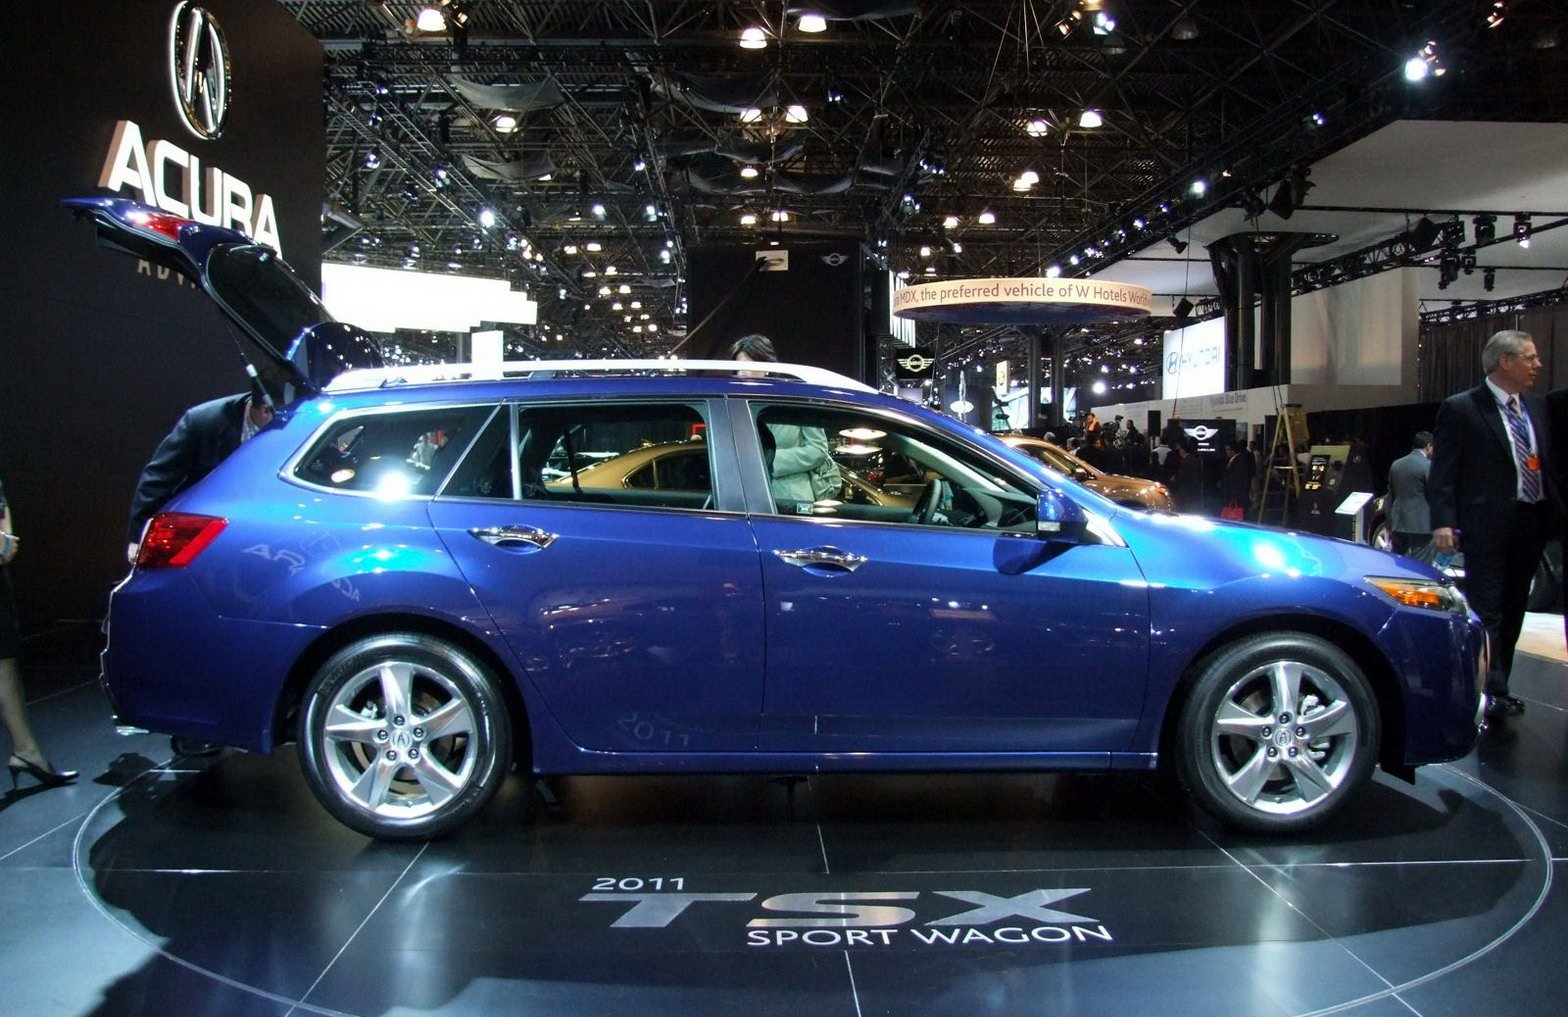 world concept cars 2011 acura tsx sport wagon. Black Bedroom Furniture Sets. Home Design Ideas